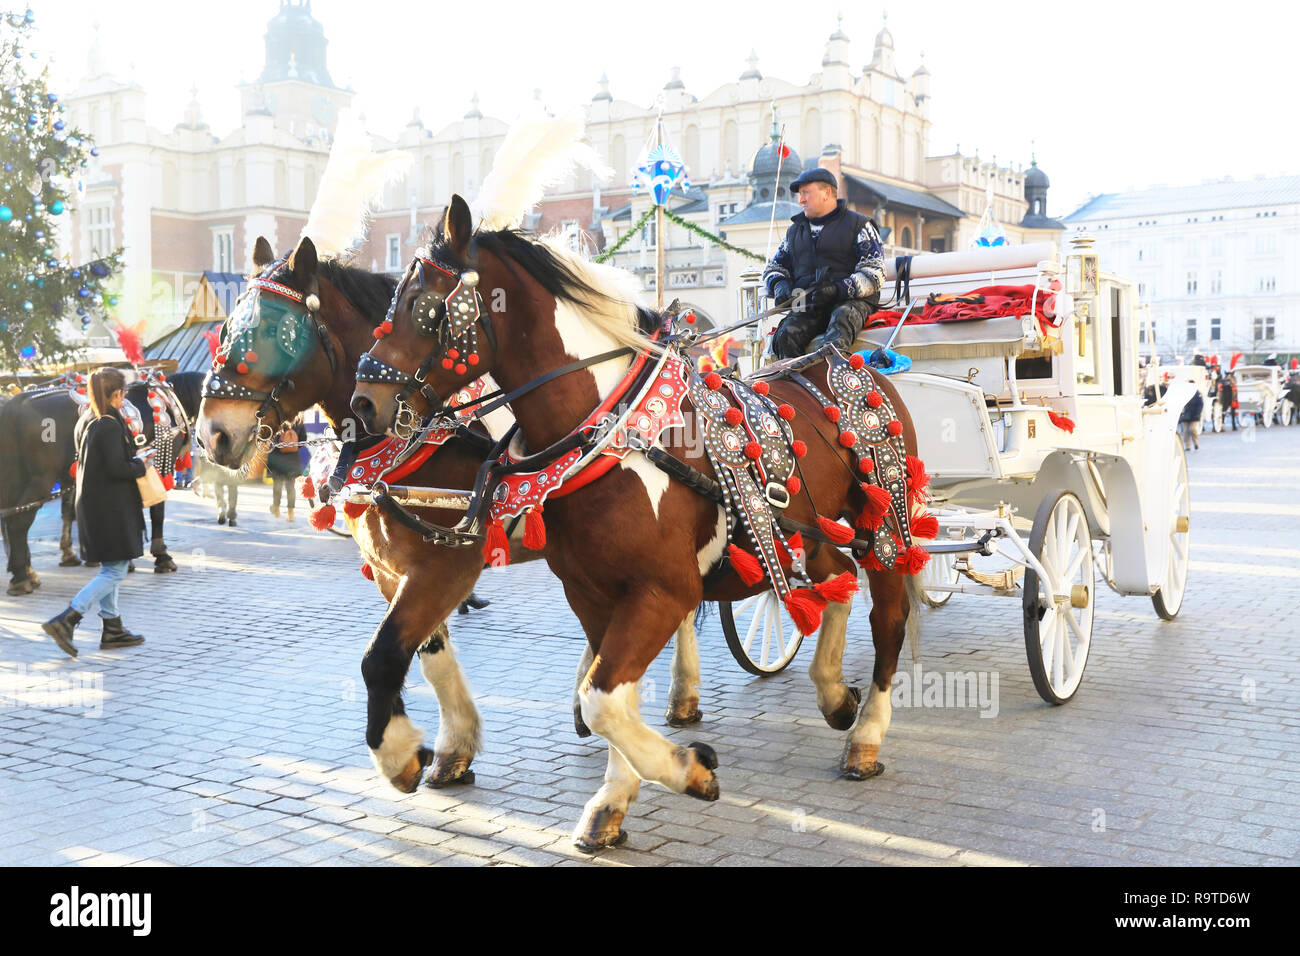 Popular Horse And Carriage Rides Around The Old Town In Krakow At Christmas Time In Poland Europe Stock Photo Alamy